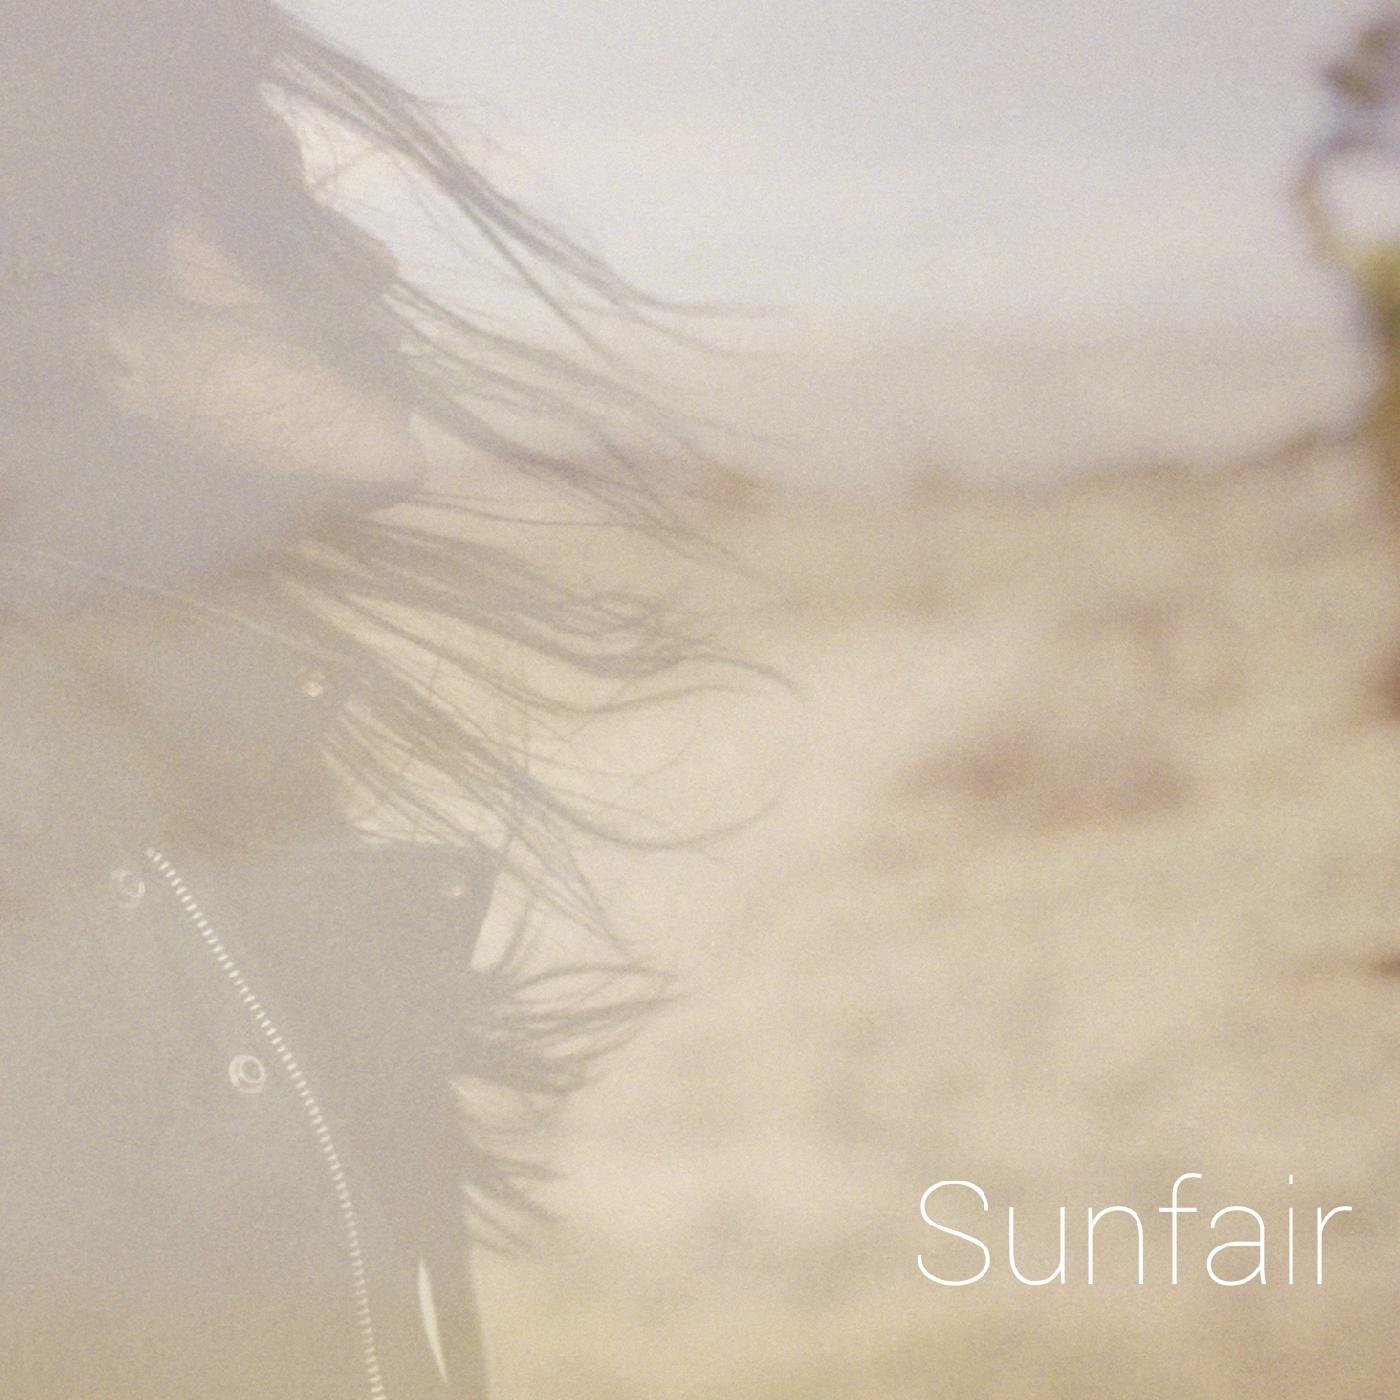 Vinilo : Melaena Cadiz - Sunfair (Limited Edition, Clear Vinyl)